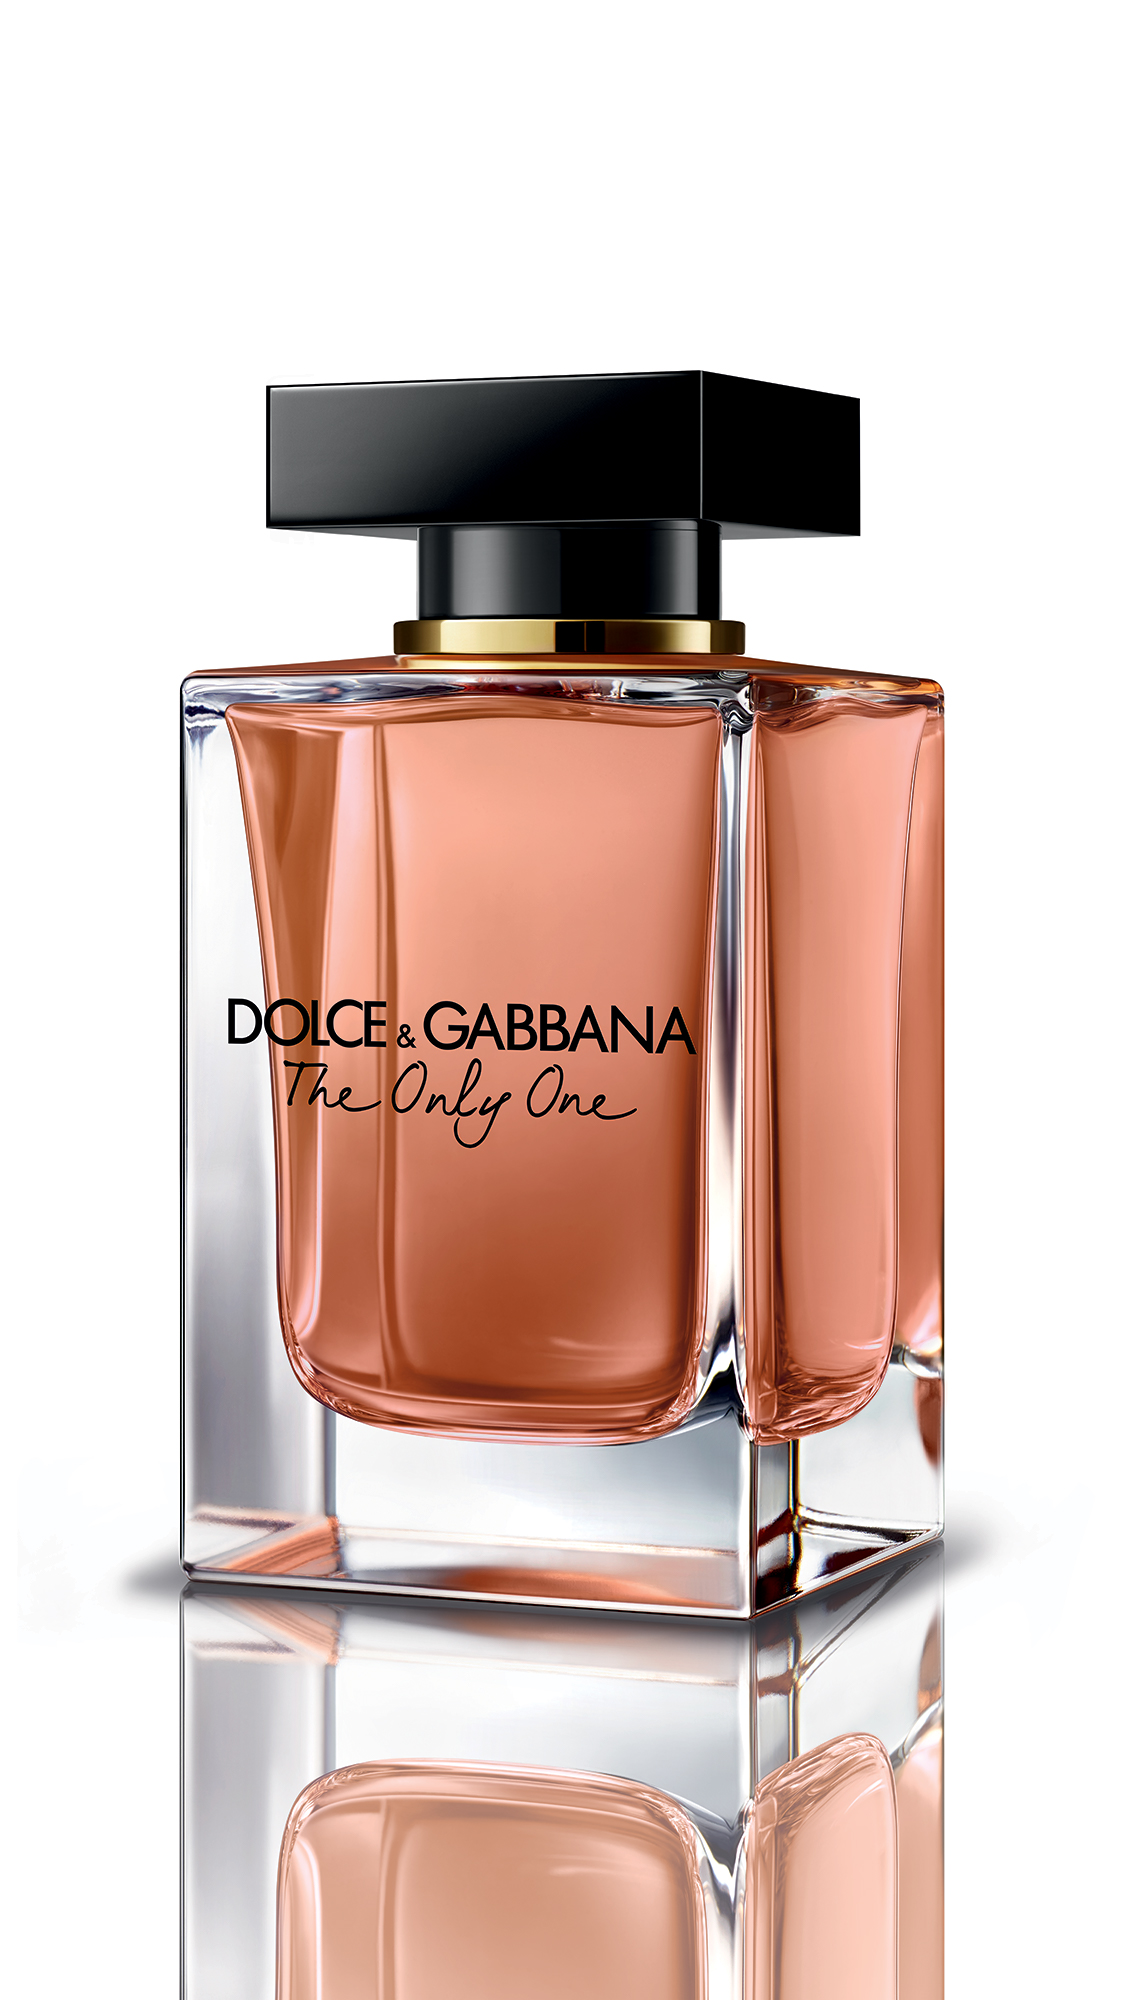 Dolce&Gabbana The Only One profumo